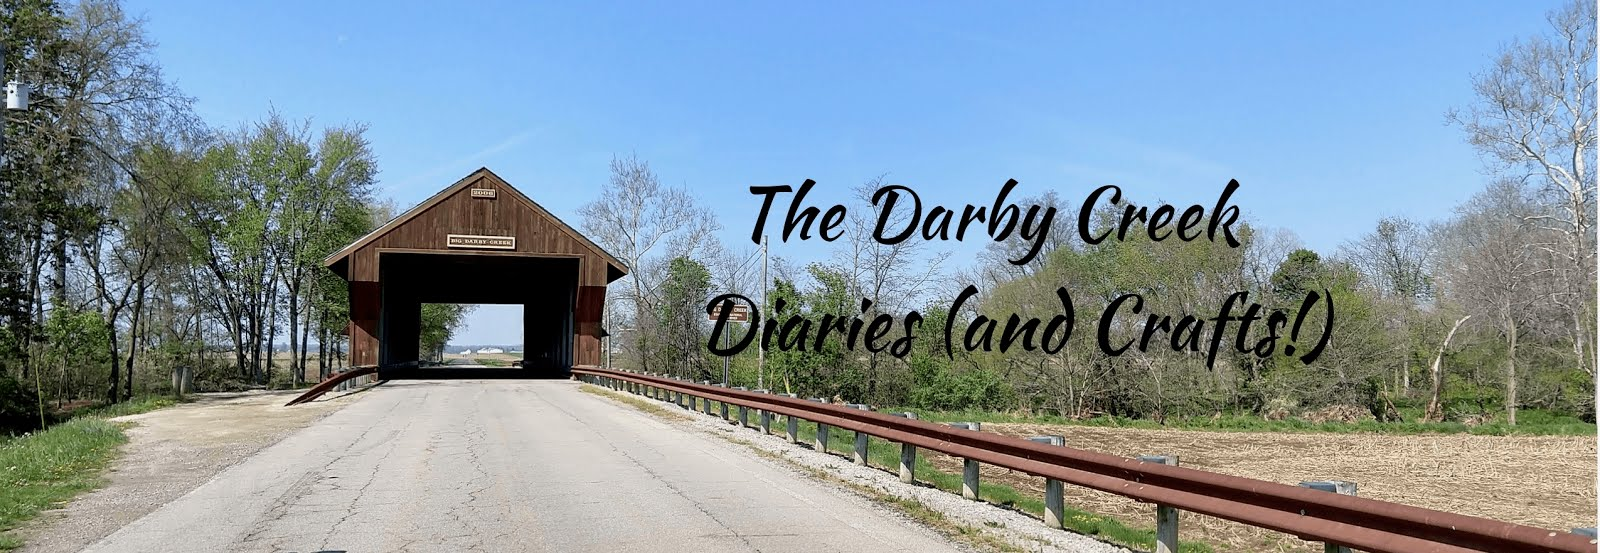 The Darby Creek Diaries